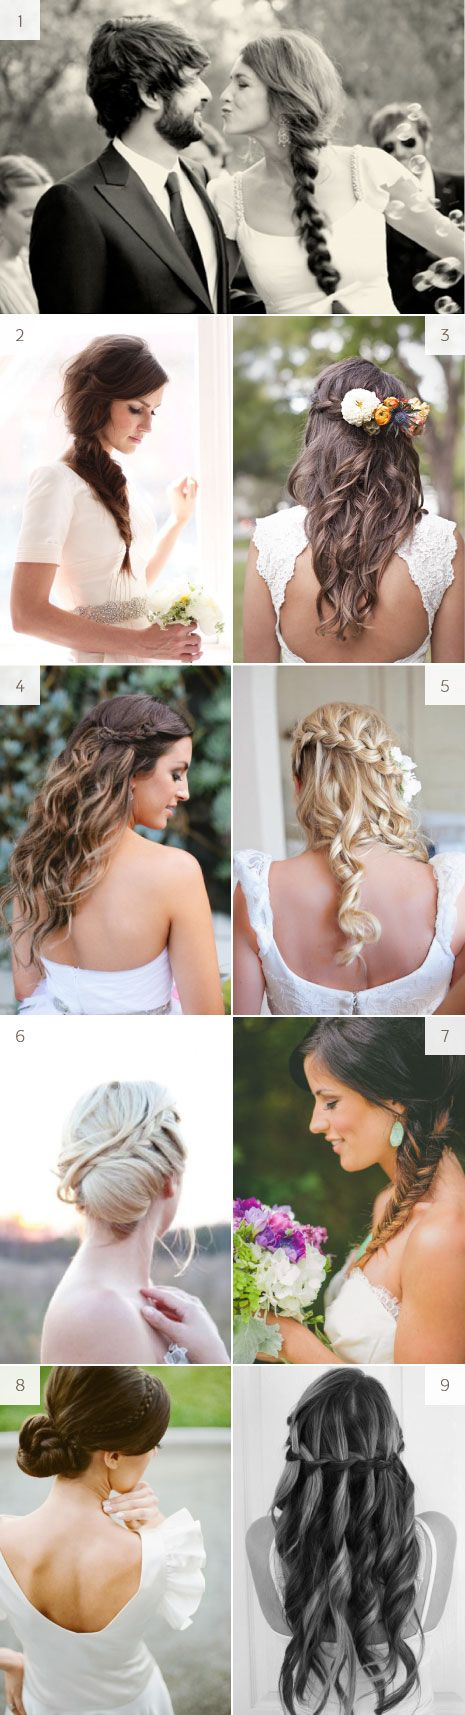 I want the one on top! Messy hair long thick braid! Gotta do it!!